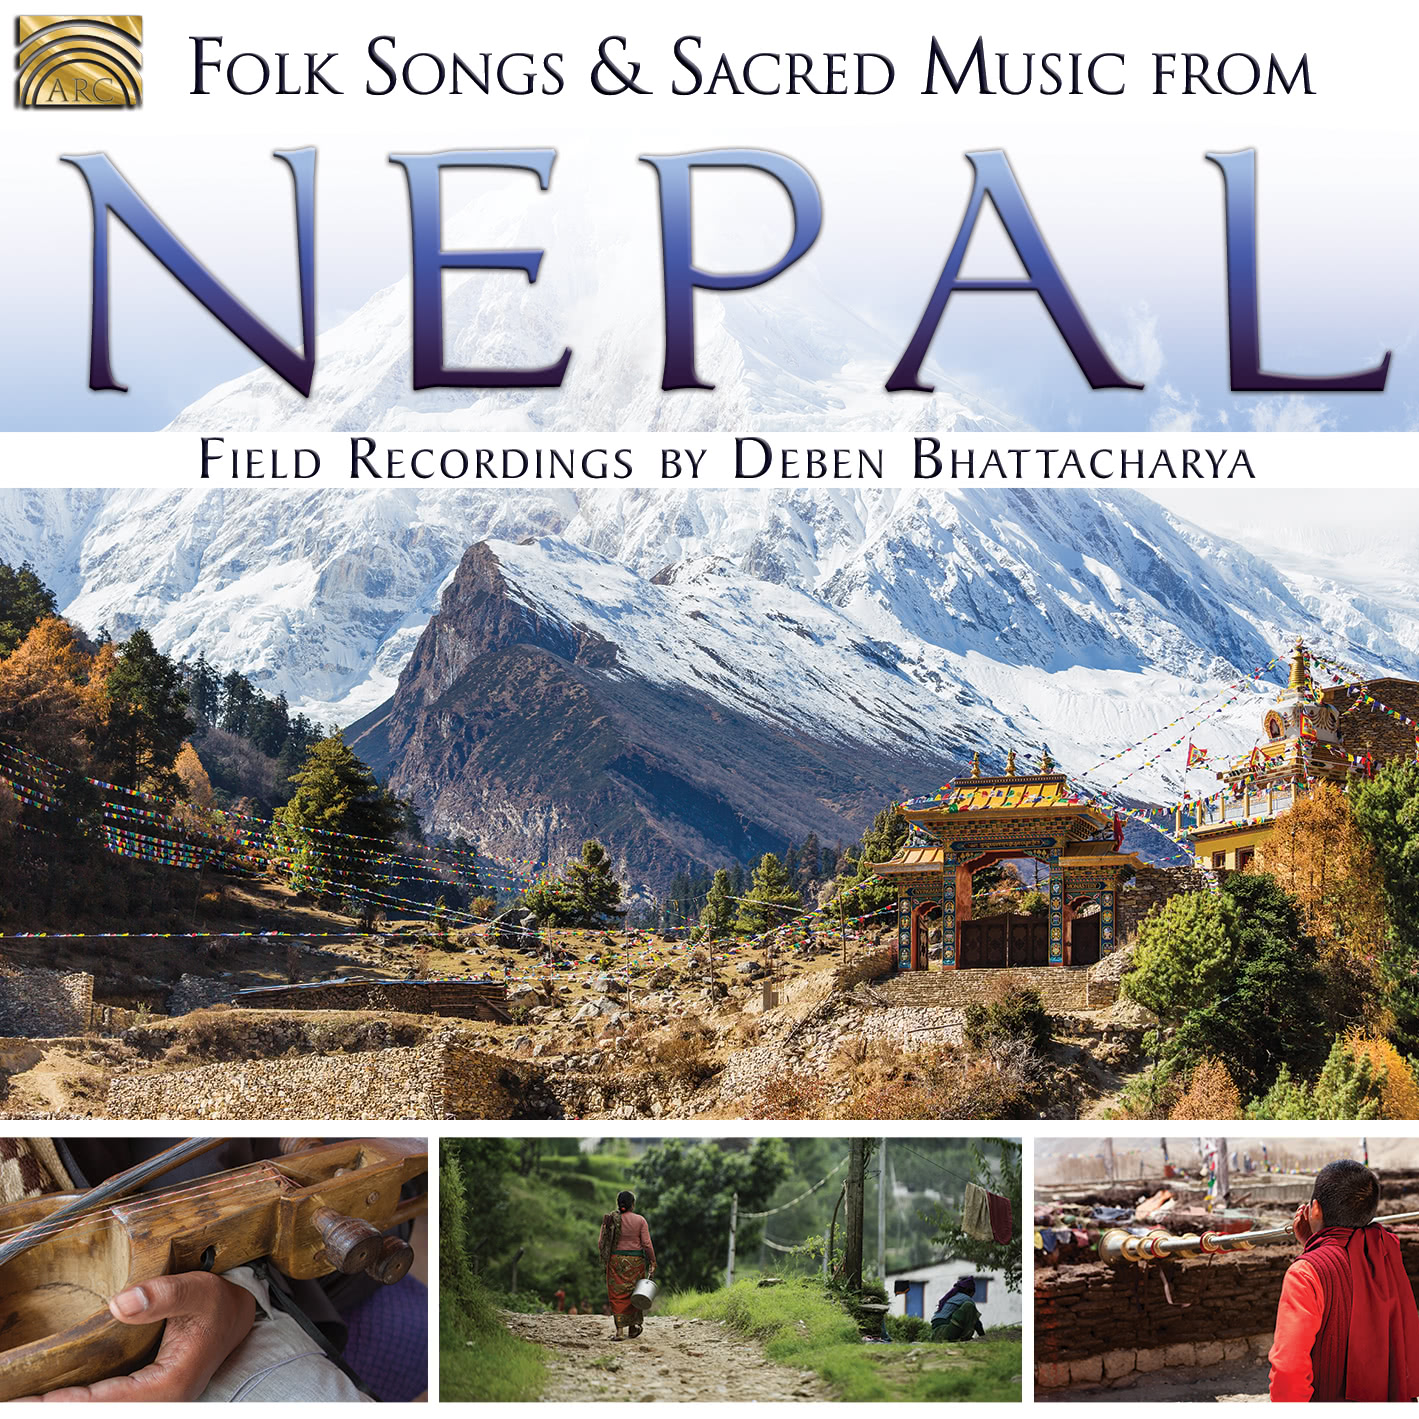 EUCD2711 Folksongs & Sacred Music from Nepal